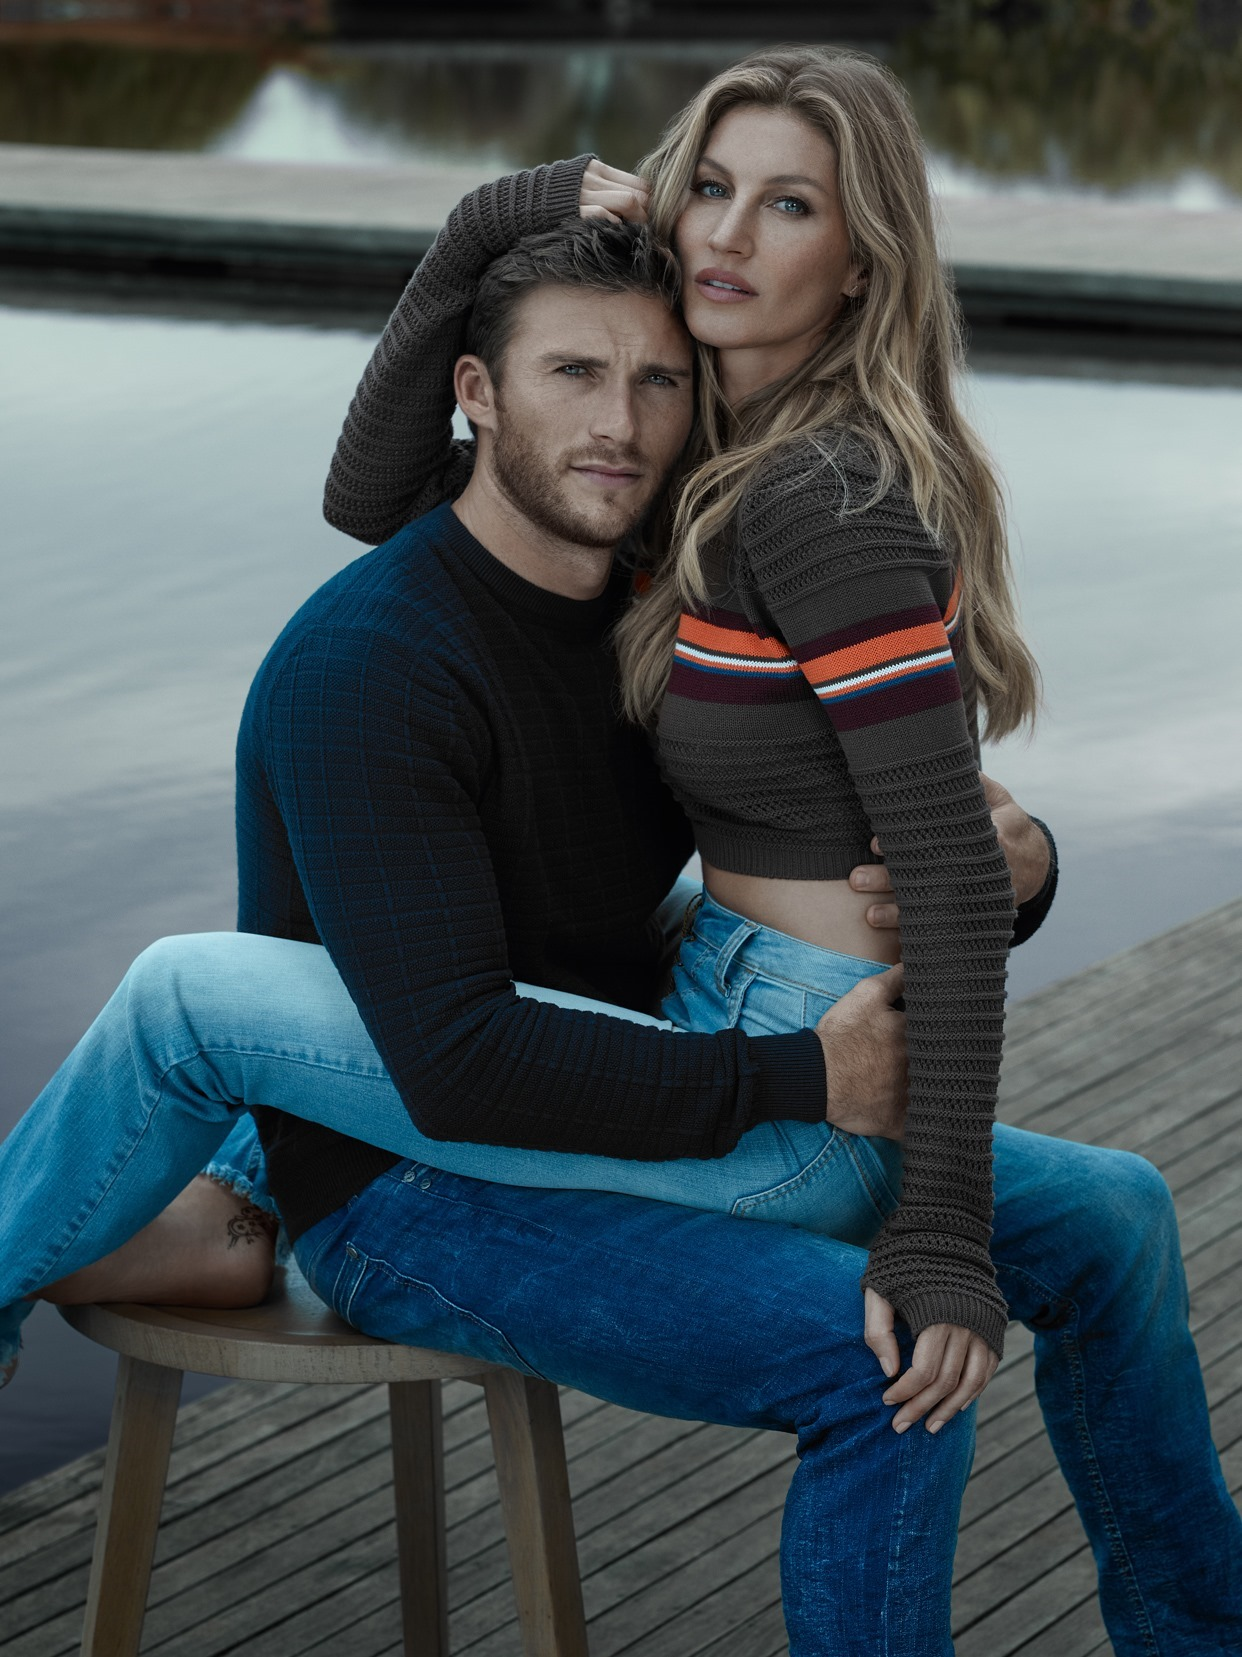 c2a81845324 CAMPAIGN  Gisele Bundchen   Scott Eastwood for Colcci Fall 2016 by Gui  Paganini